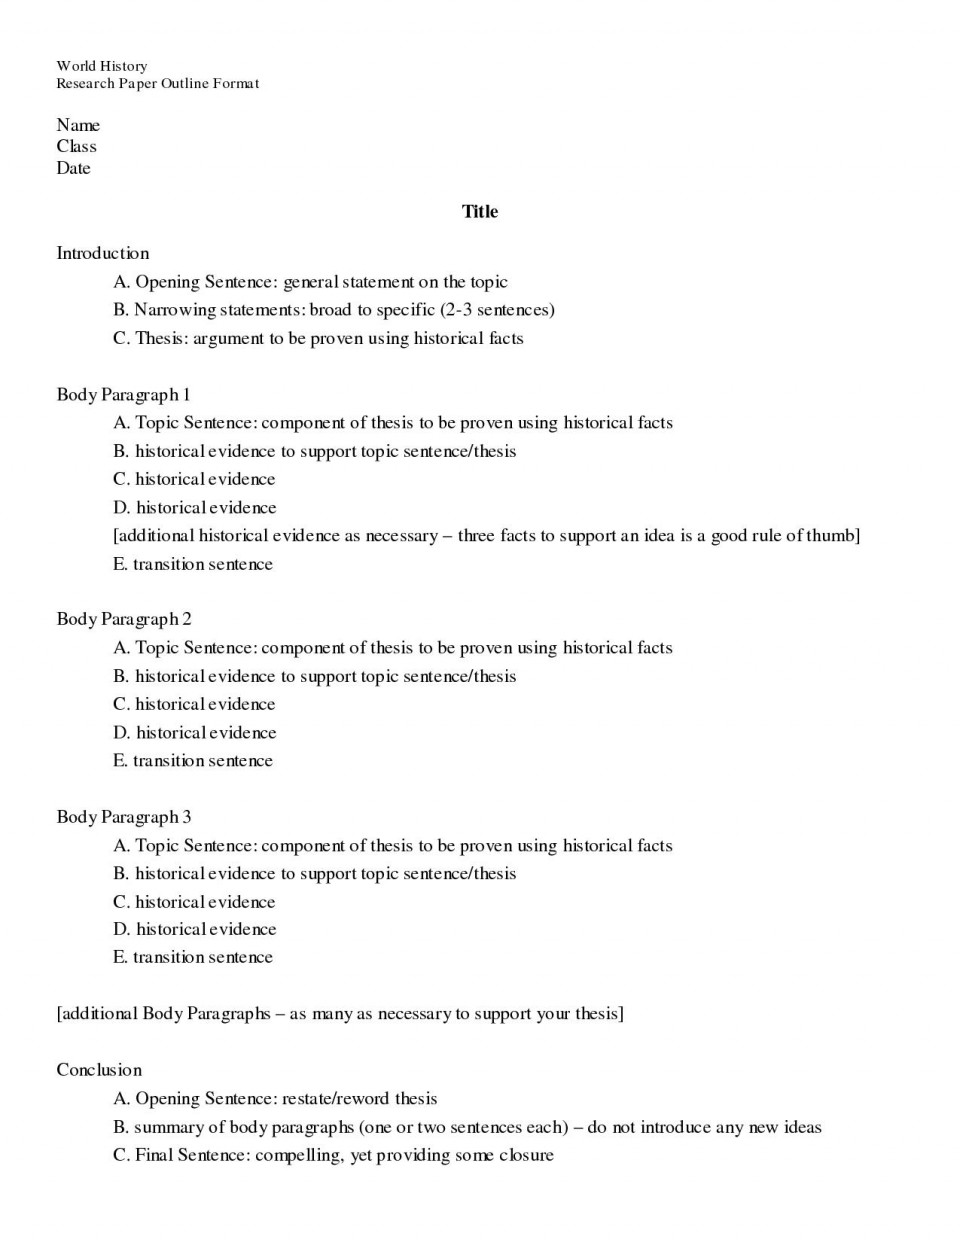 012 Outline Image1 Sample Outlines For Researchs Awful Research Papers Writing Example Apa Format 960